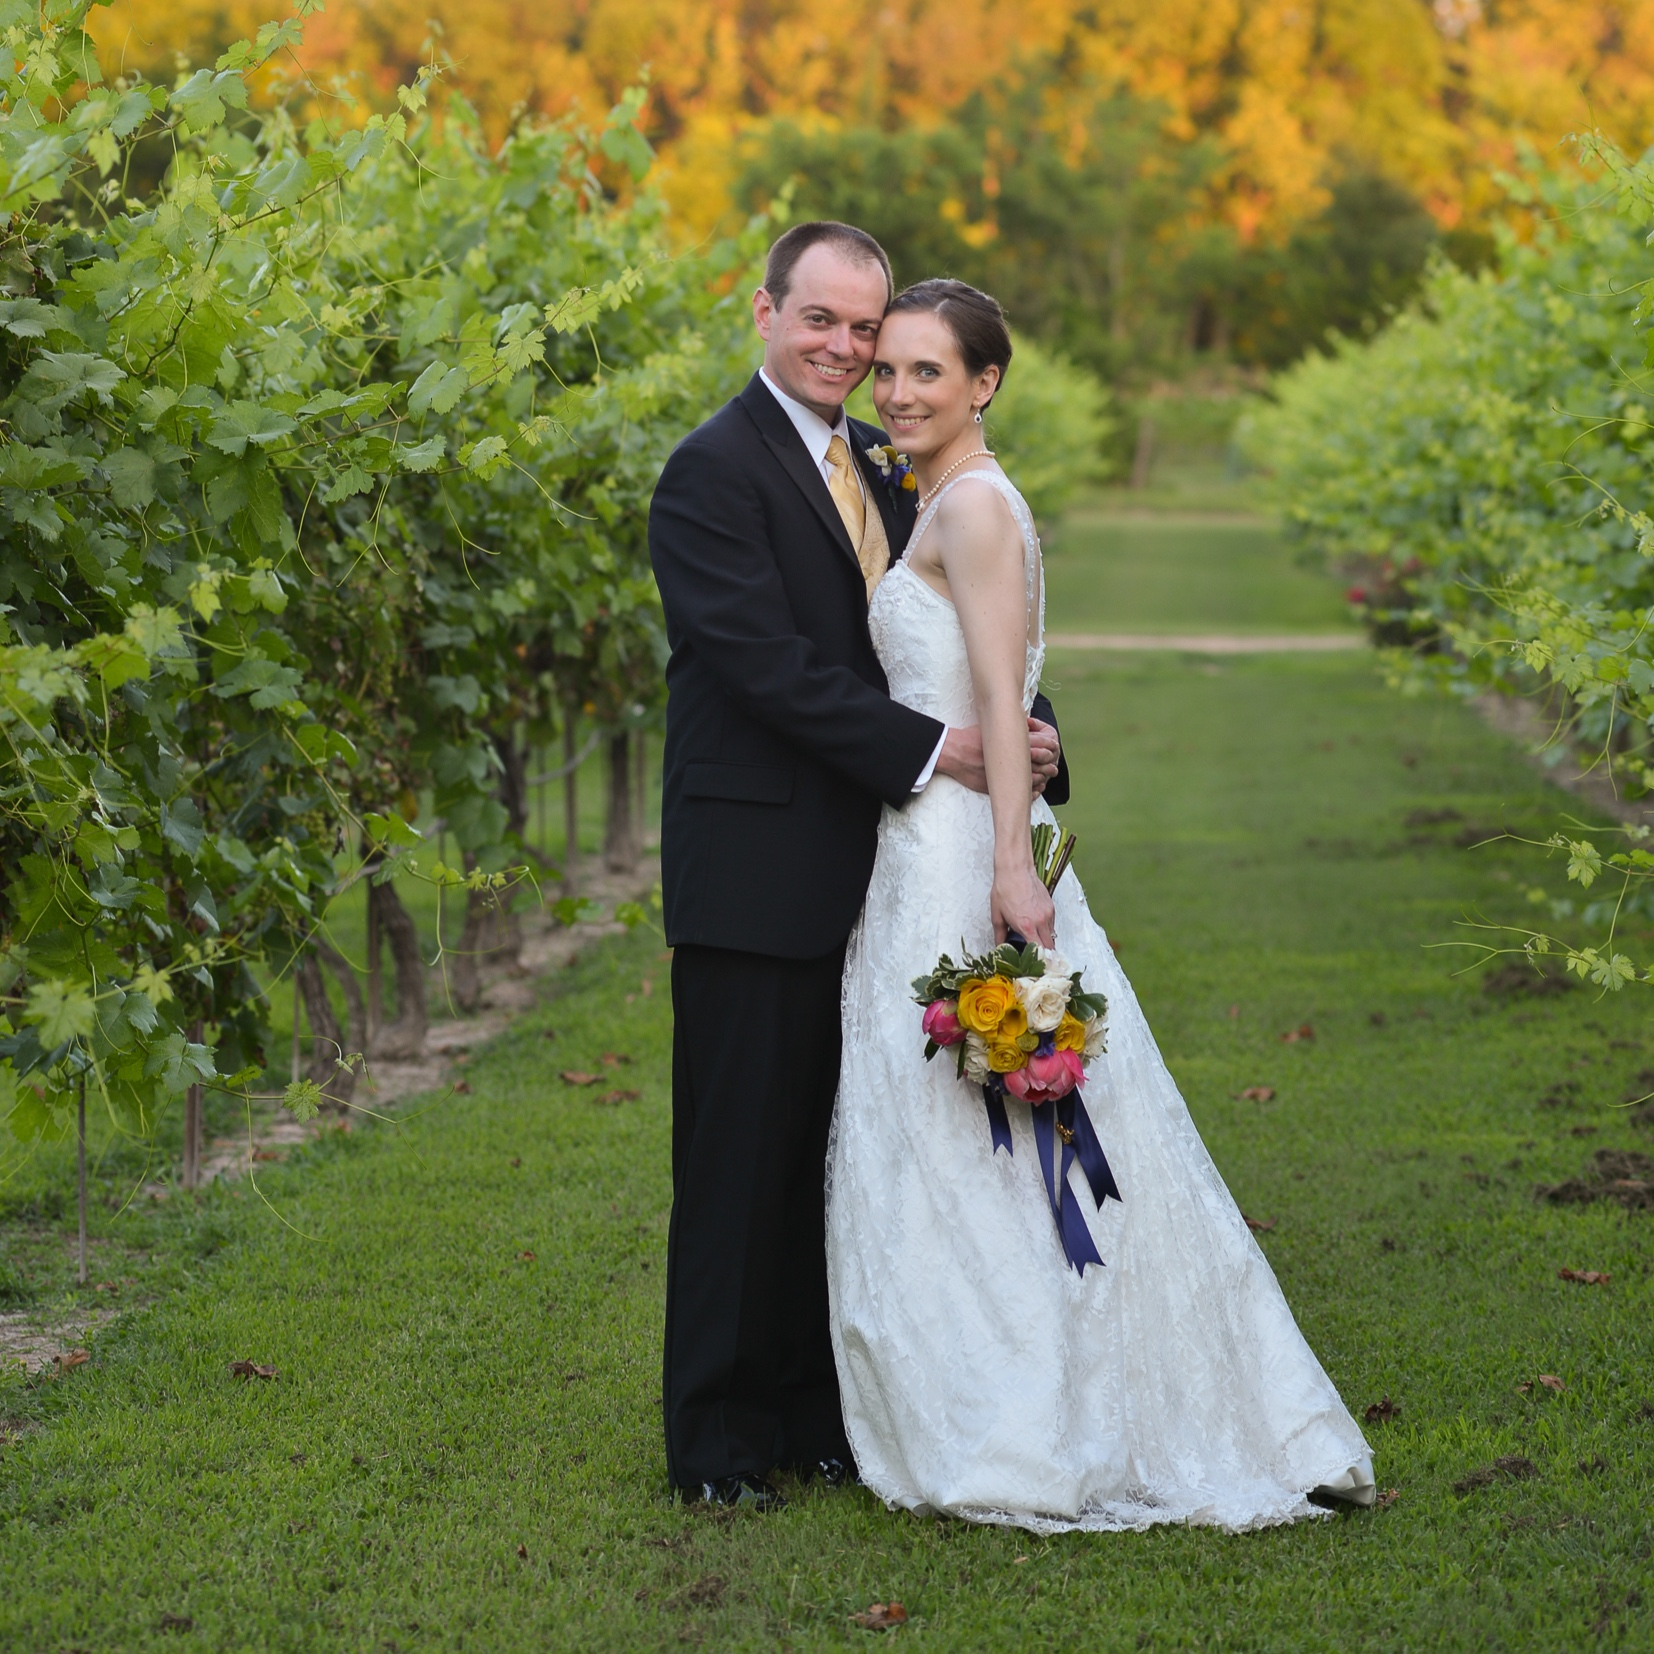 - Just the Facts - $1800This package is ideal for the couple that is looking to keep it simple and just cover the basics:• Christie will be your stellar wedding photographer (cue applause)• Up to 4 hours of wedding coverage• All of your images bound in our 8x8 Magazine Proofbooks• Online hosting with complimentary info cards to send to your guests•Thumbdrive of all of the color corrected images, upon payment